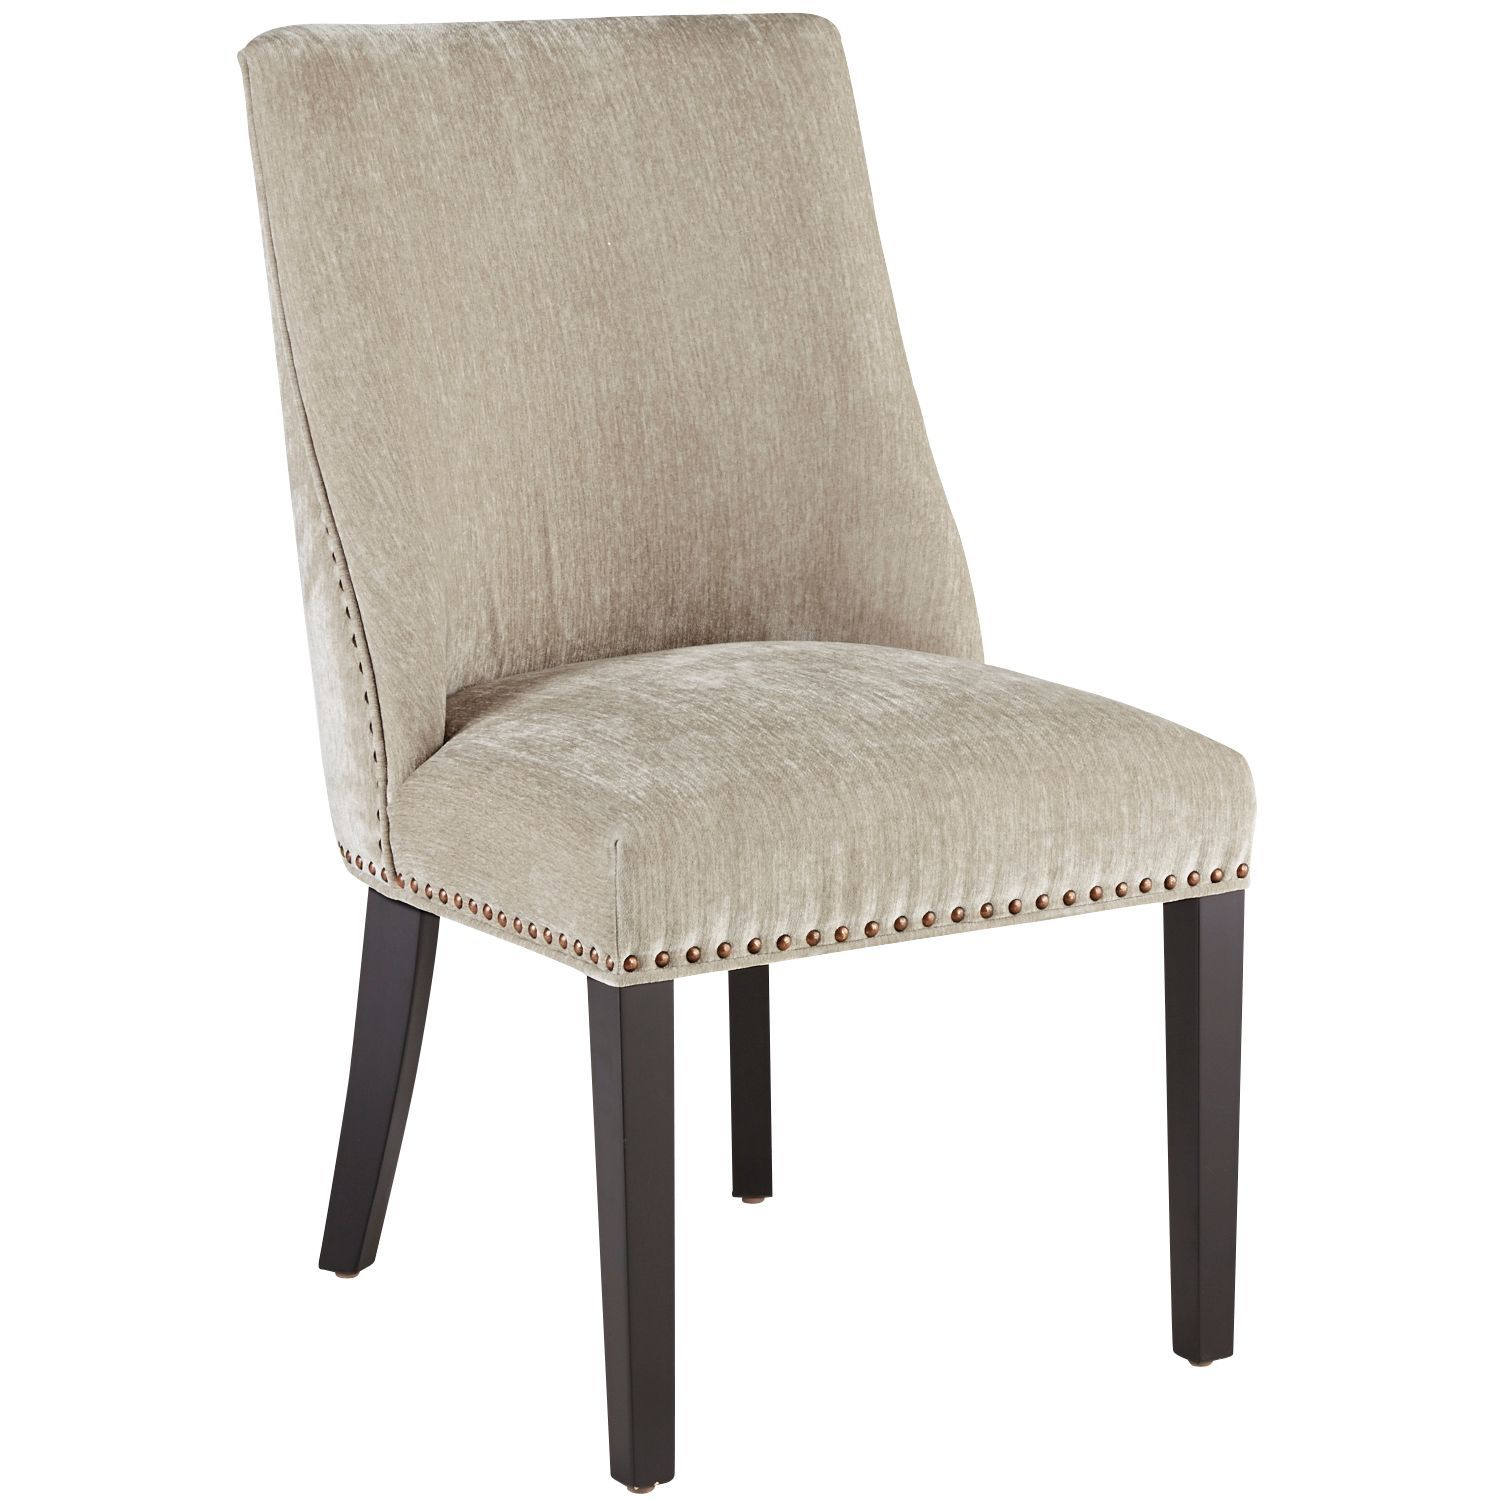 Corinne Velvet Wheat Dining Chair with Black Wood Dining